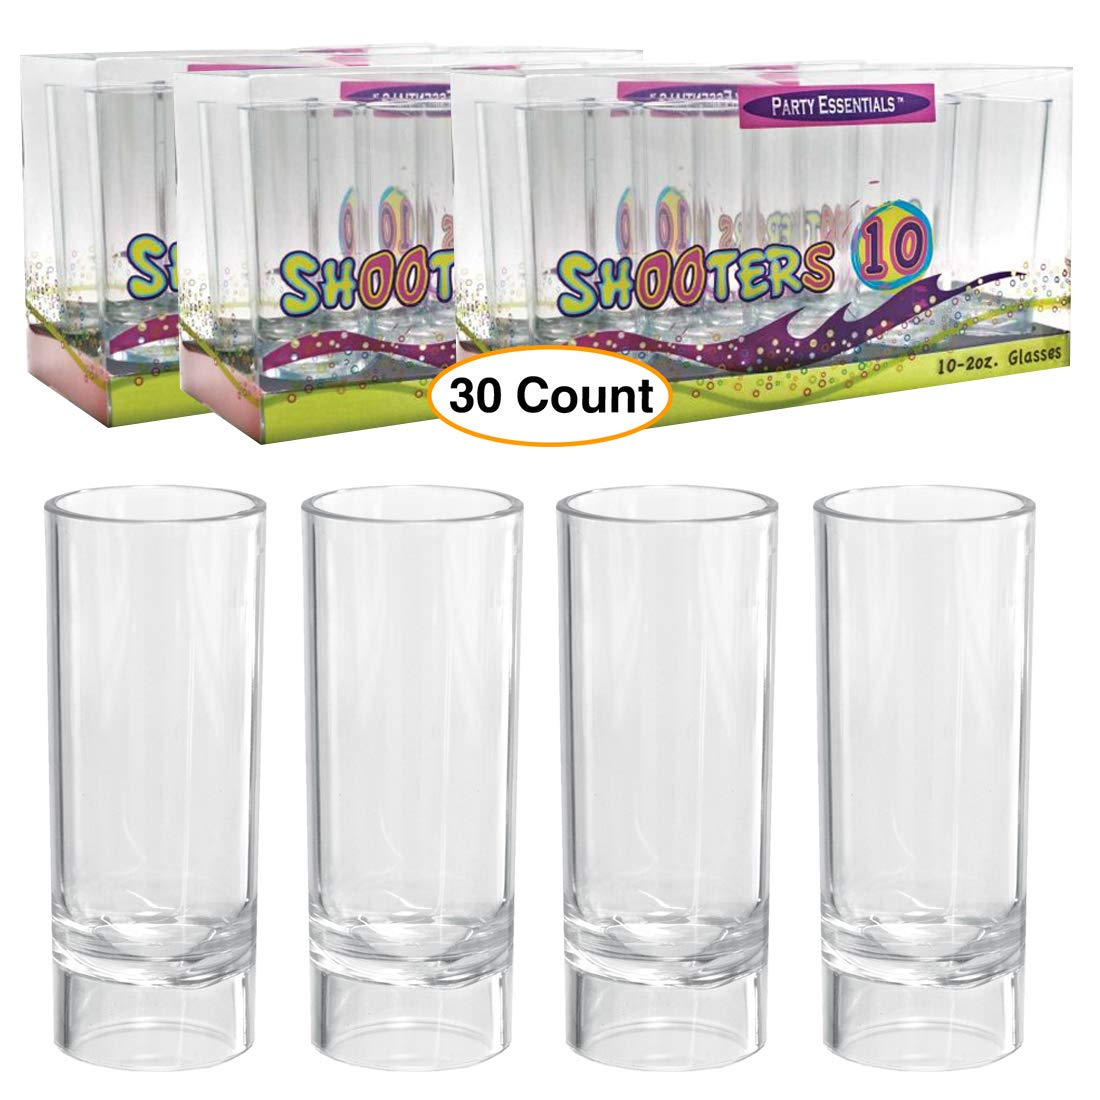 Premium Clear Shooter Shot Glasses 2 oz. tall & Durable Heavy Plastic for parties Disposable or reusable (30 Count) by NW Party